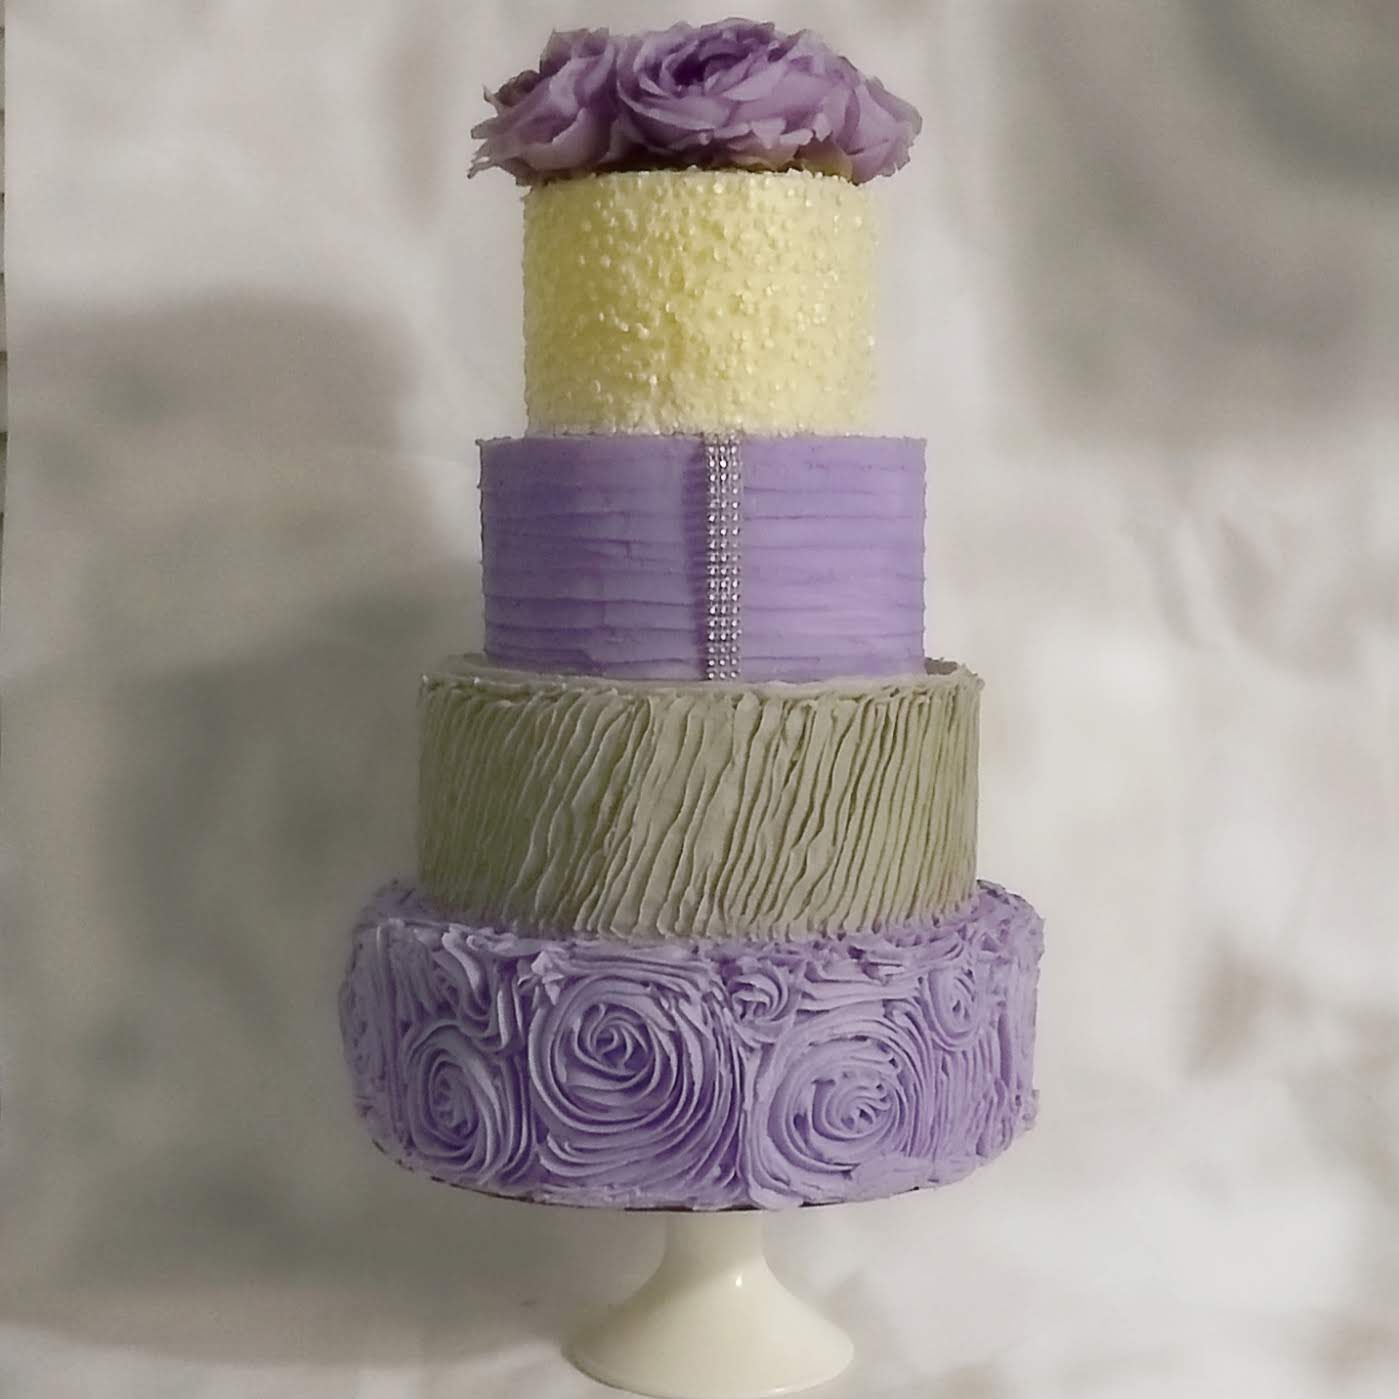 A Stunning 4 Tier Buttercream Wedding Cake